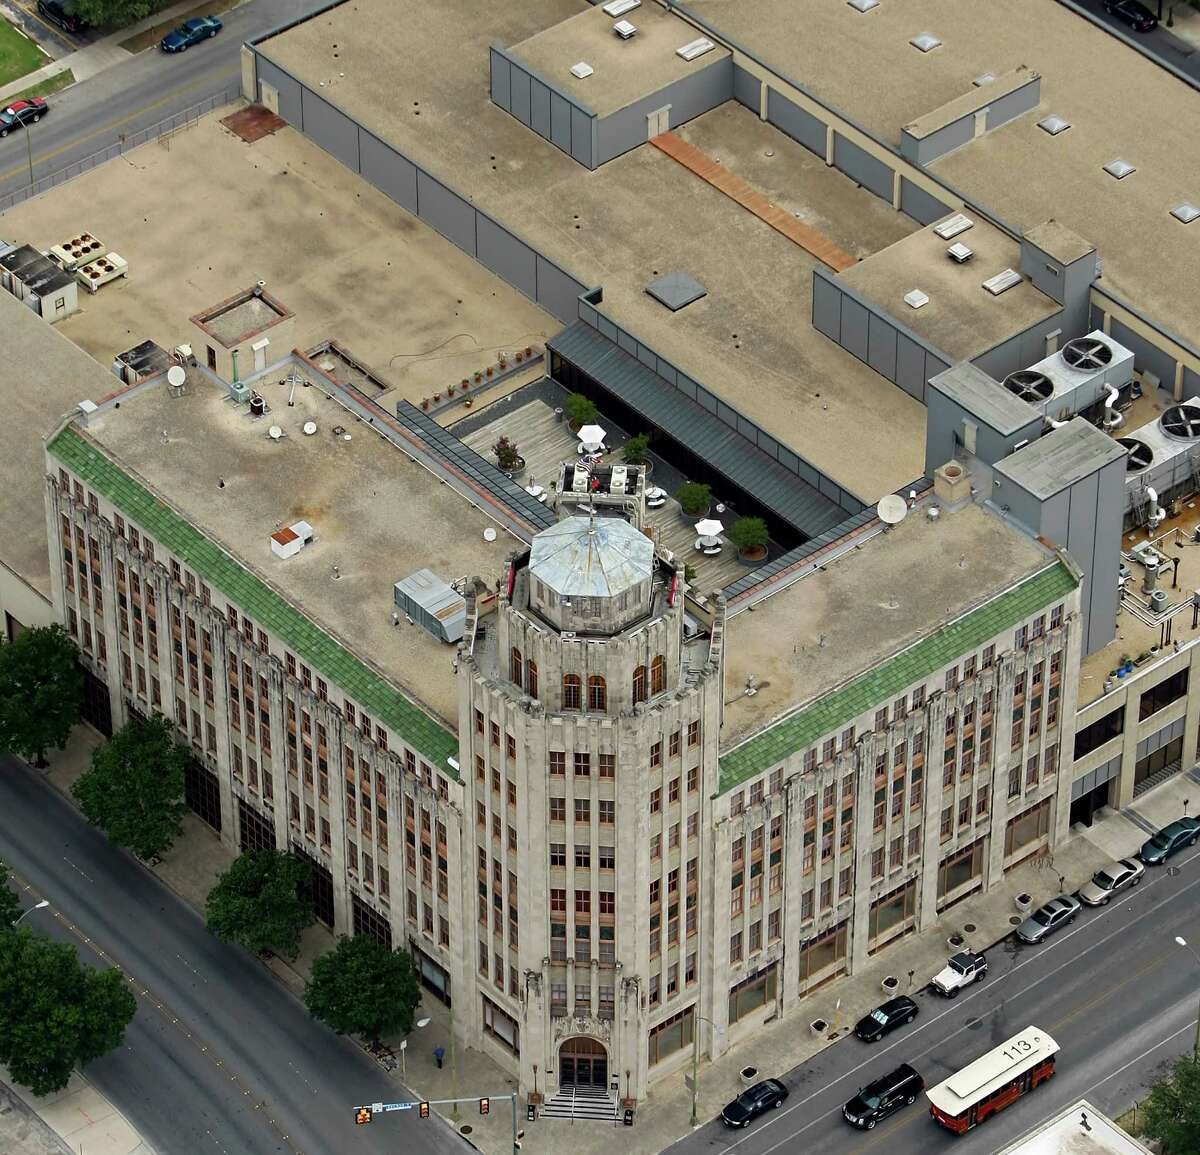 The San Antonio Express-News building is seen in this Friday July 1, 2011 aerial picture.